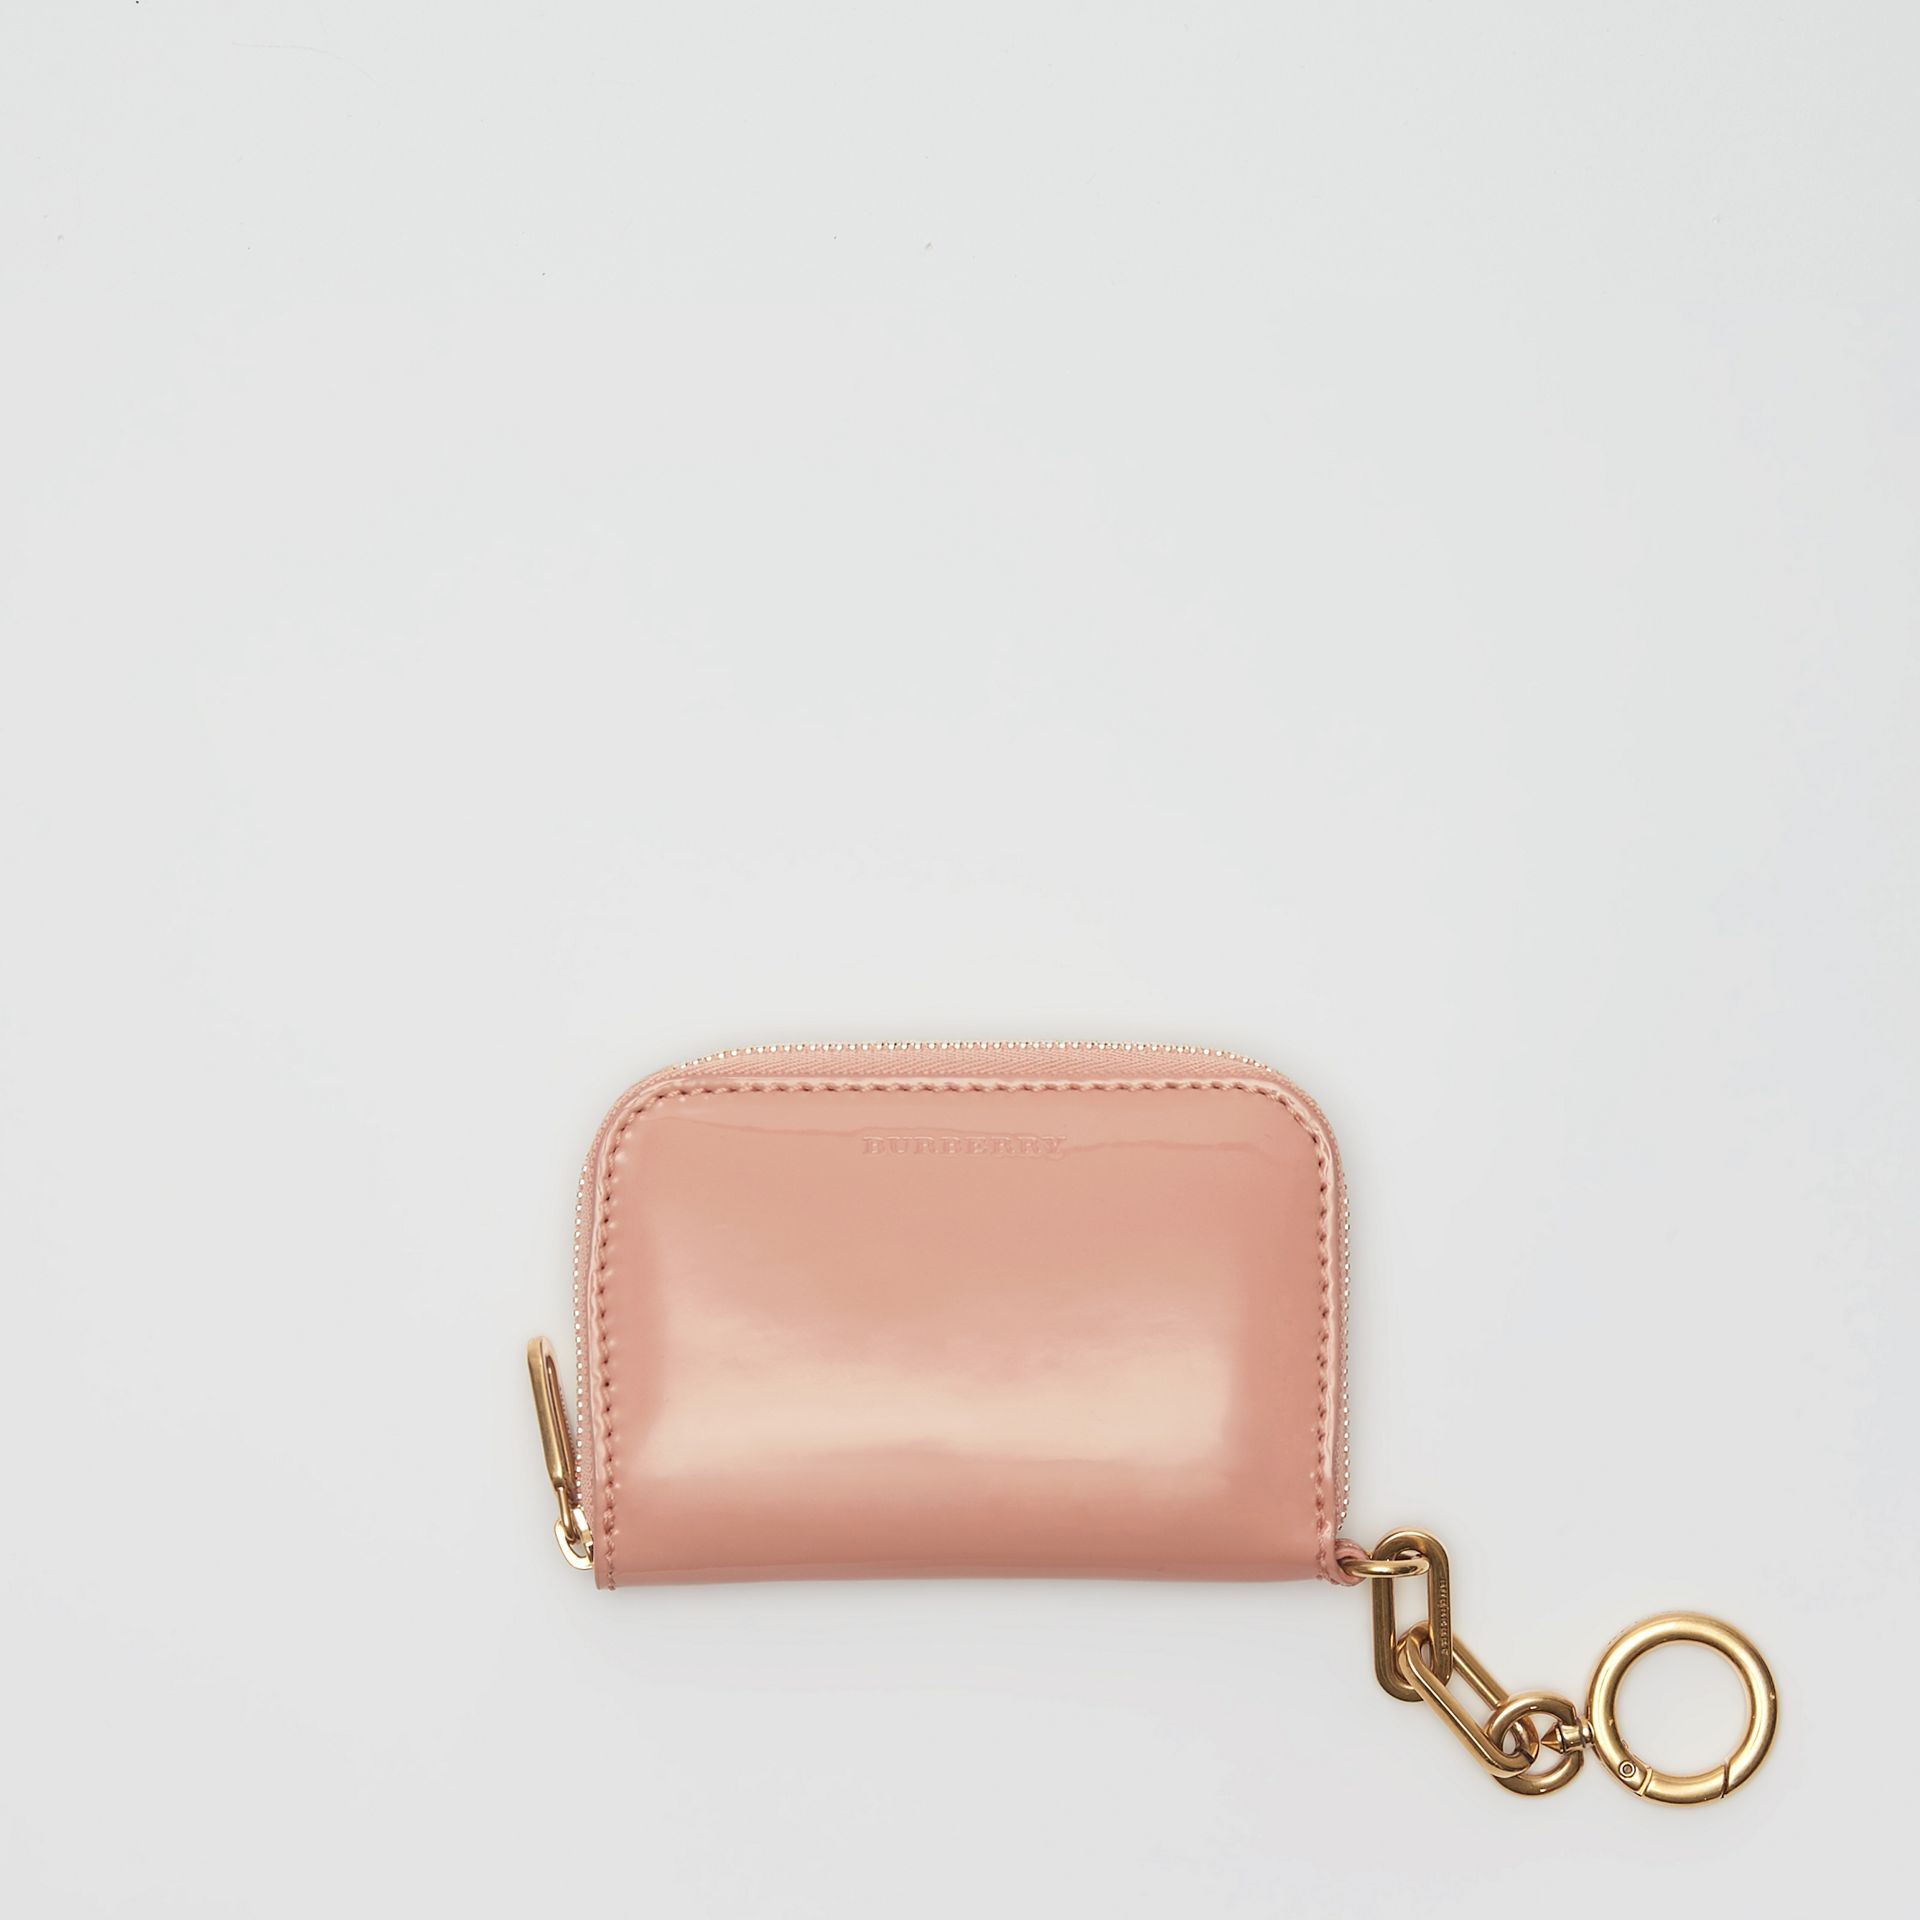 Link Detail Patent Leather Ziparound Wallet in Pale Fawn Pink - Women | Burberry Singapore - gallery image 2